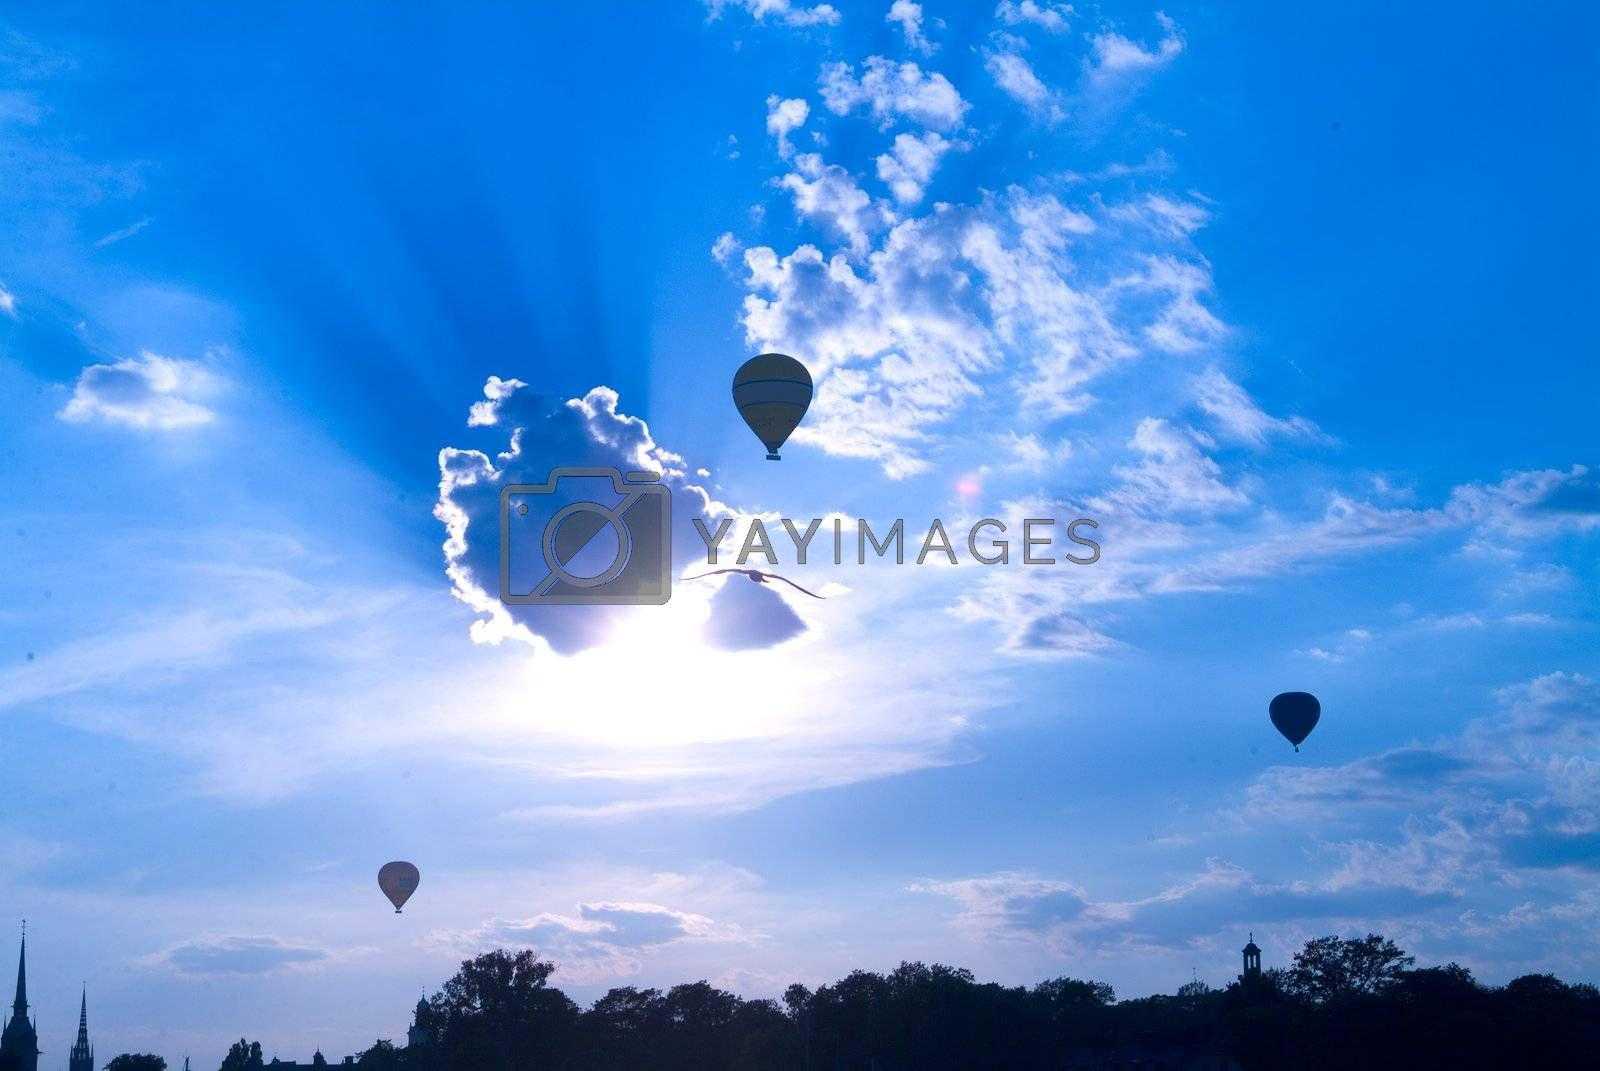 hei�luftballon in stockholm | balloon in stockholm by fotofritz